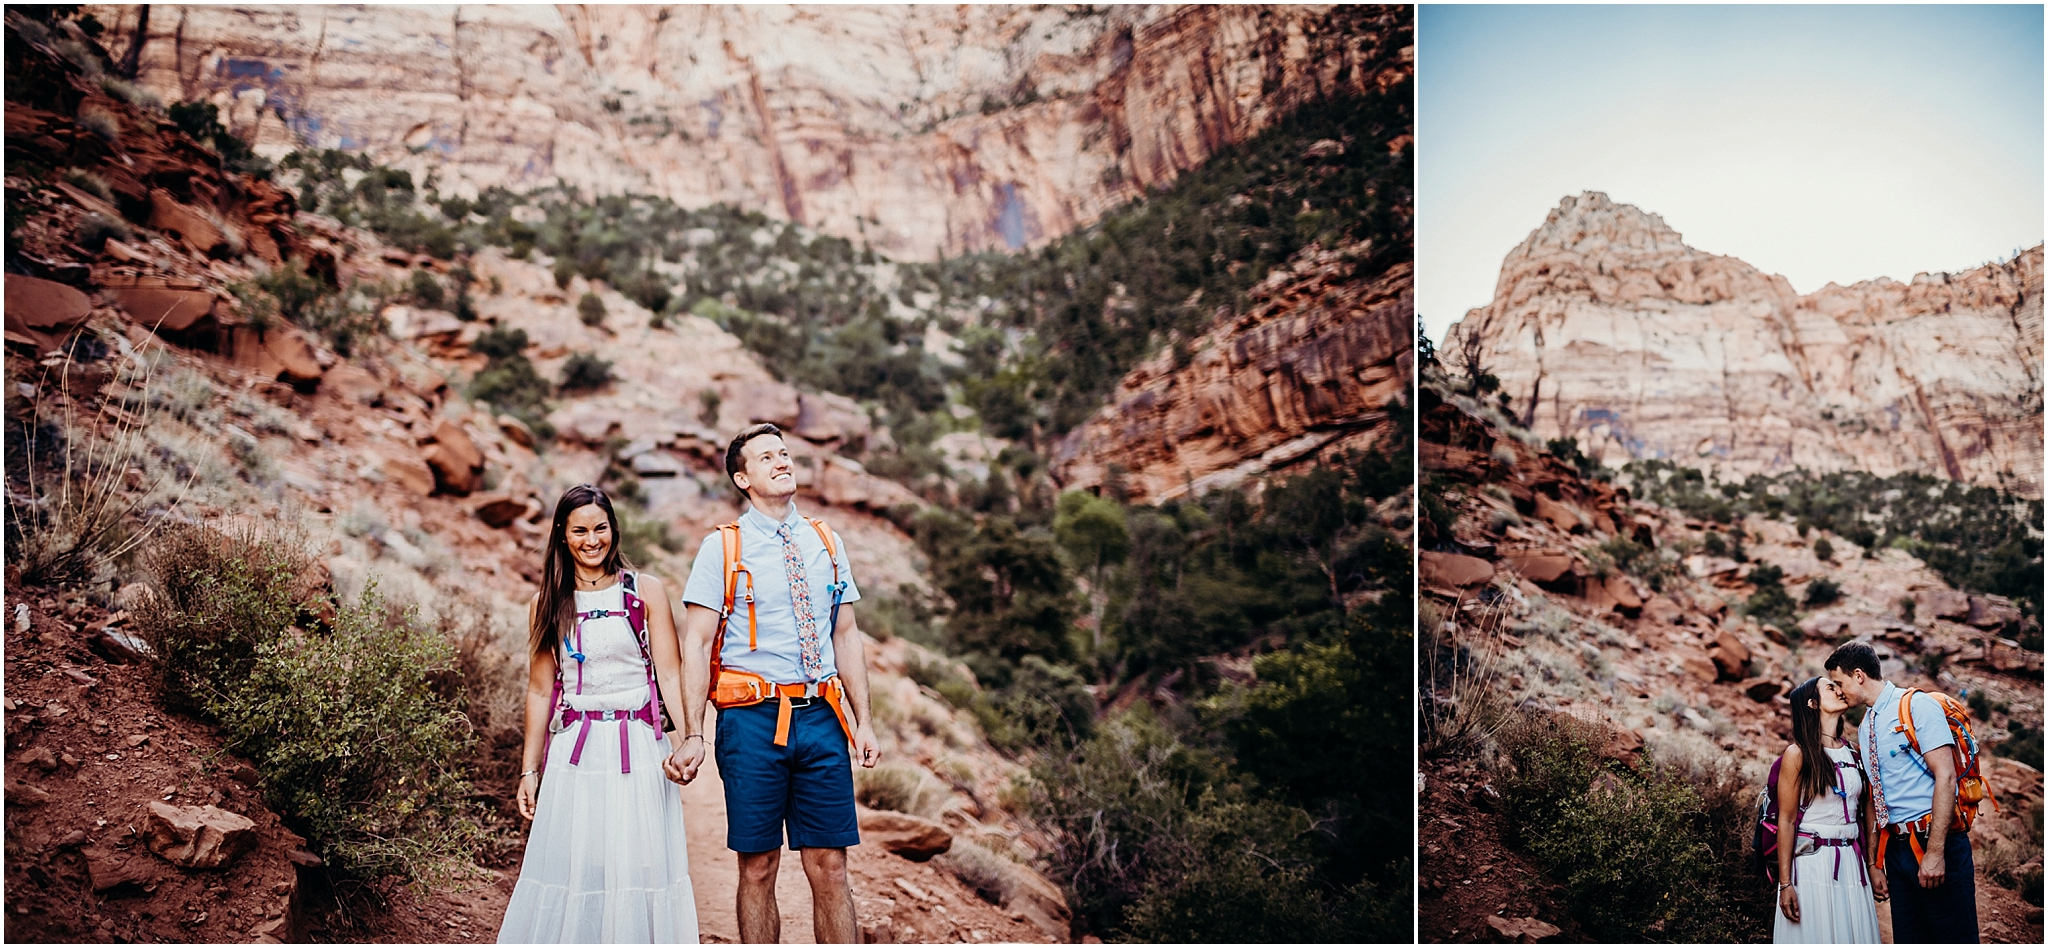 zion national park adventure engagement session zion portraits utah photographer arizona photographer 7.jpg